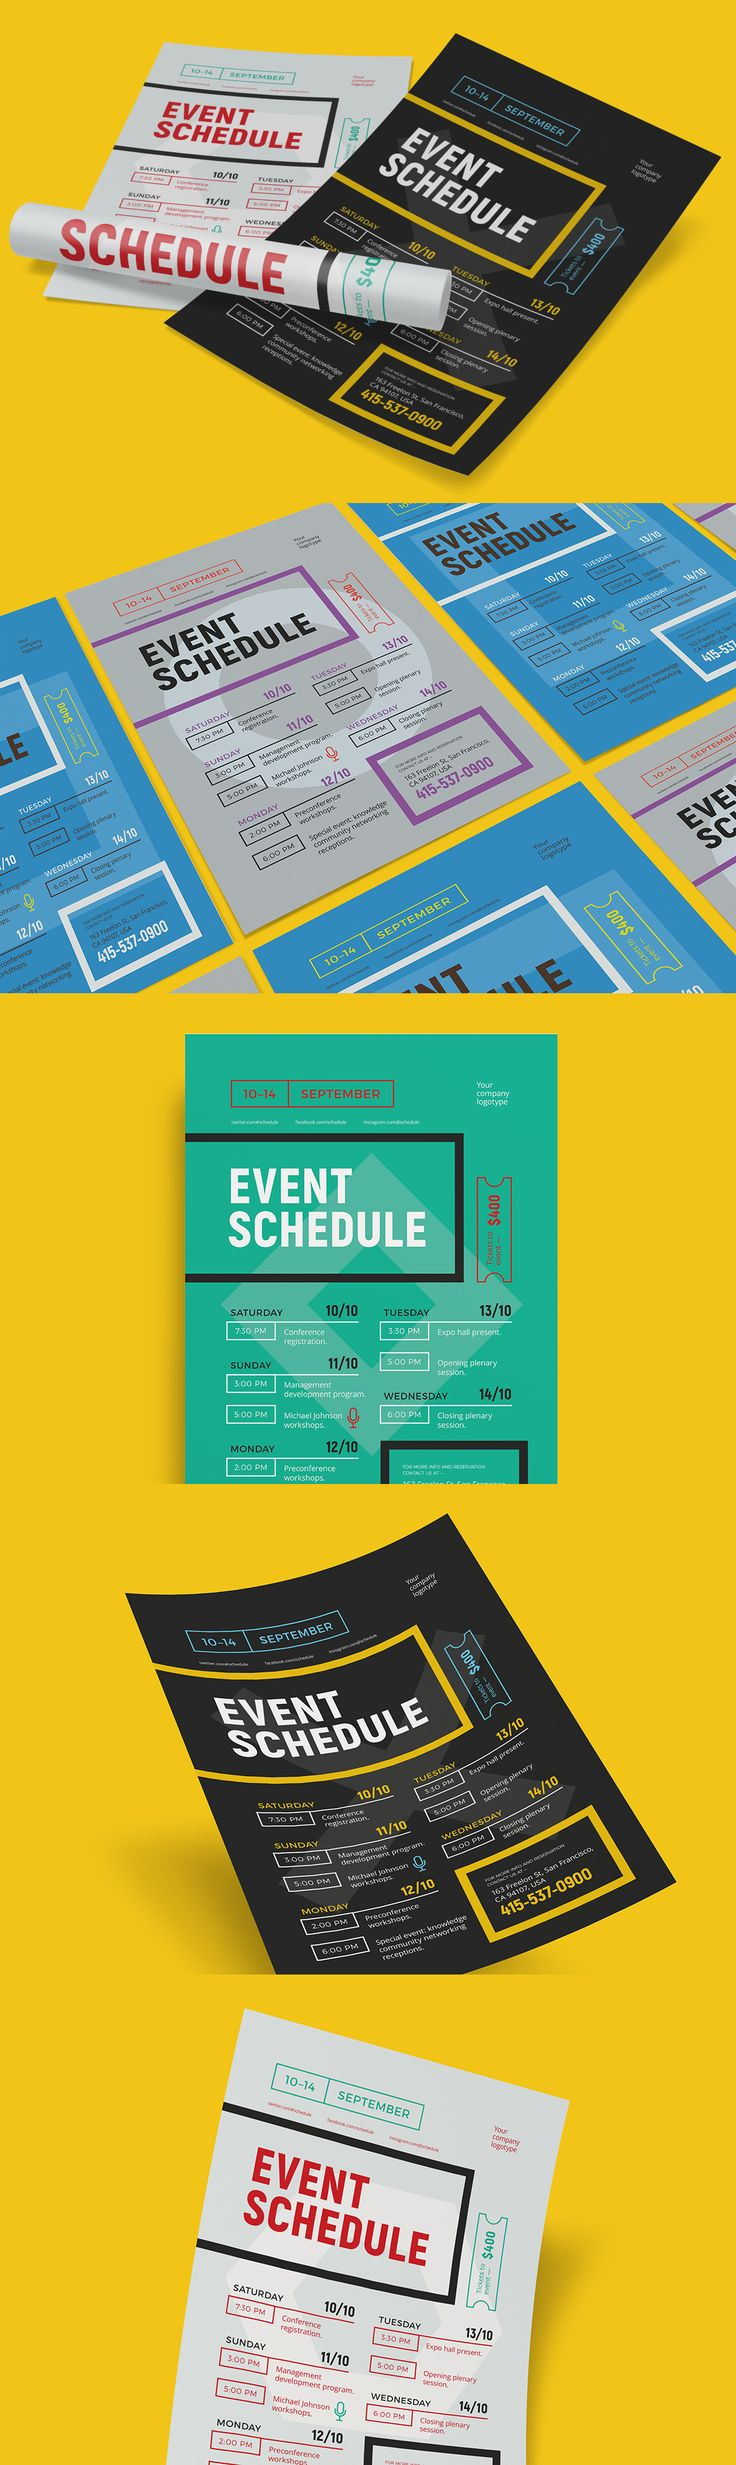 Poster design software free download - Schedule Event Poster Template Ai Eps Event Poster Templateposter Templatesuniversity Challengeschedule Designprogram